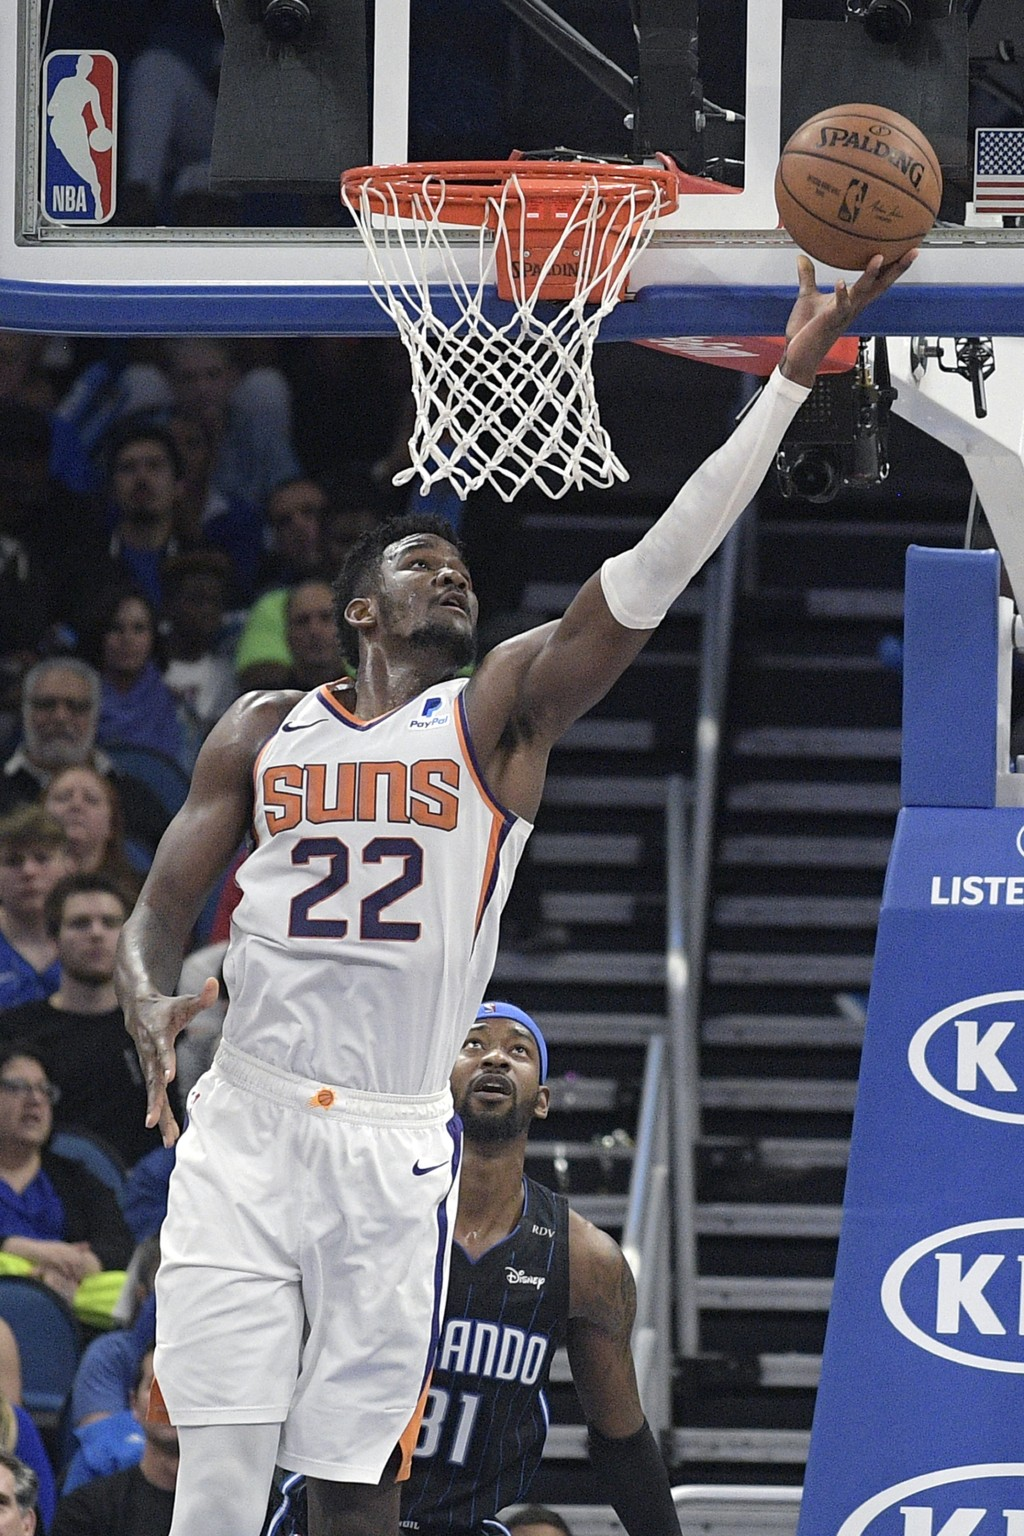 Phoenix Suns center Deandre Ayton (22) goes up for a shot in front of Orlando Magic guard Terrence Ross (31) during the second half of an NBA basketba...